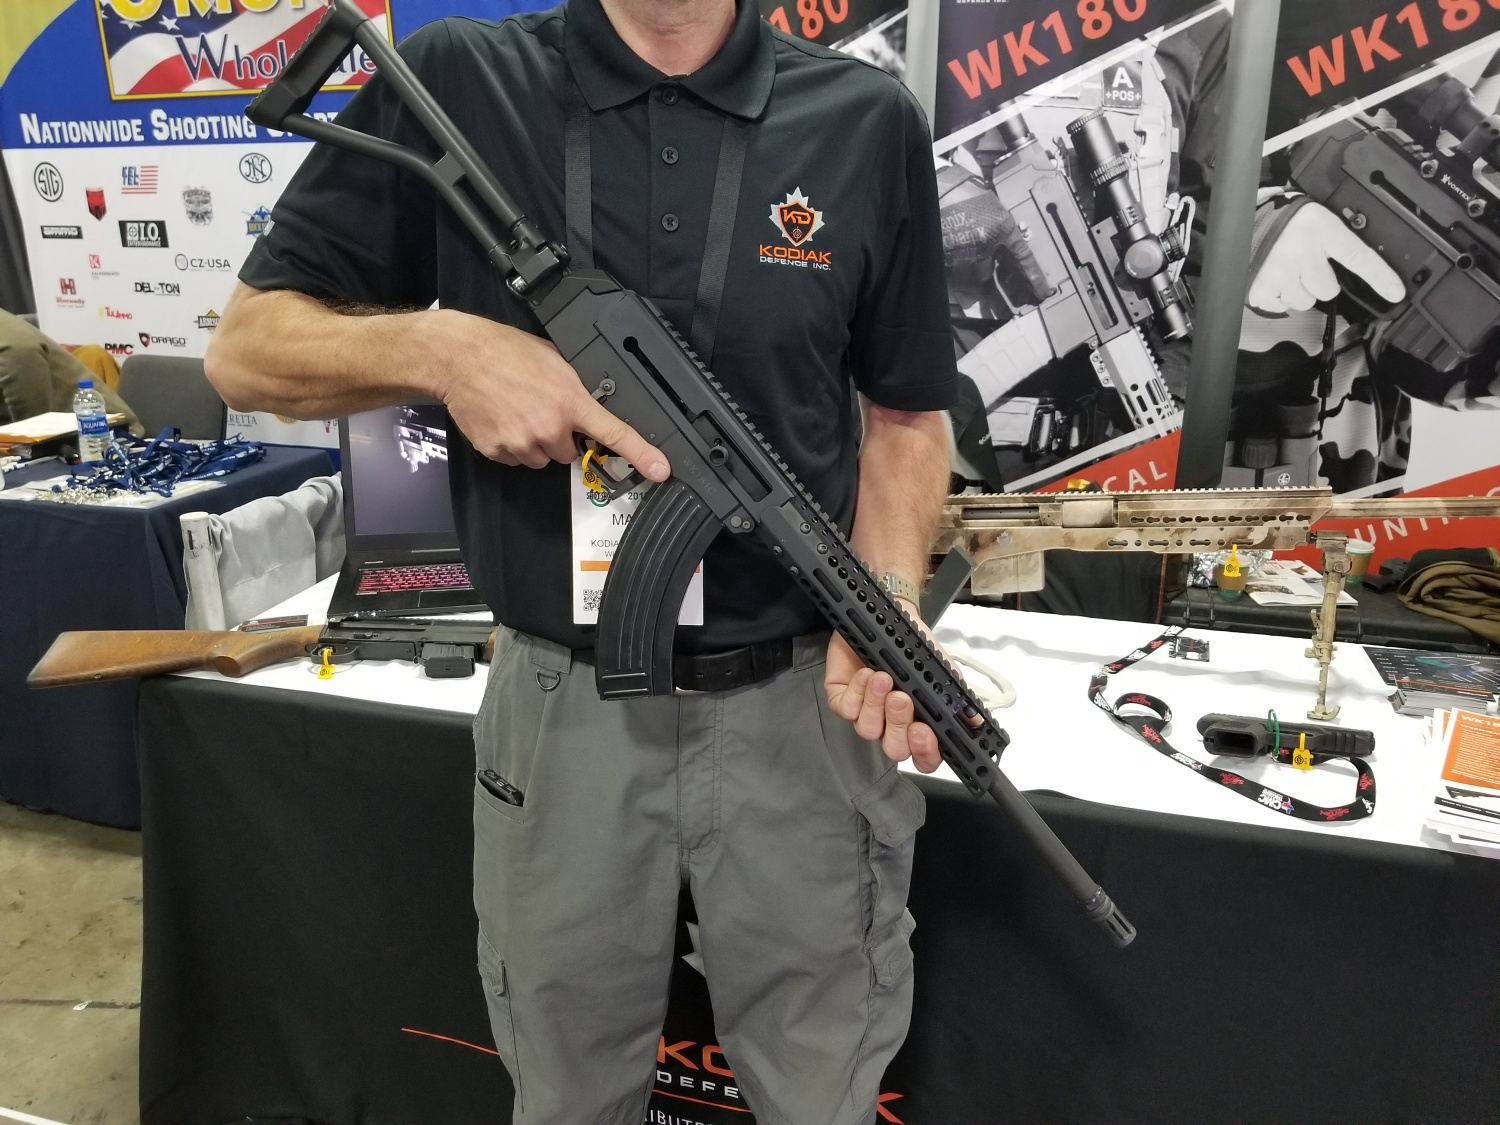 SHOT 2019] New WK180-C rifle and sporting VZ58 from Kodiak